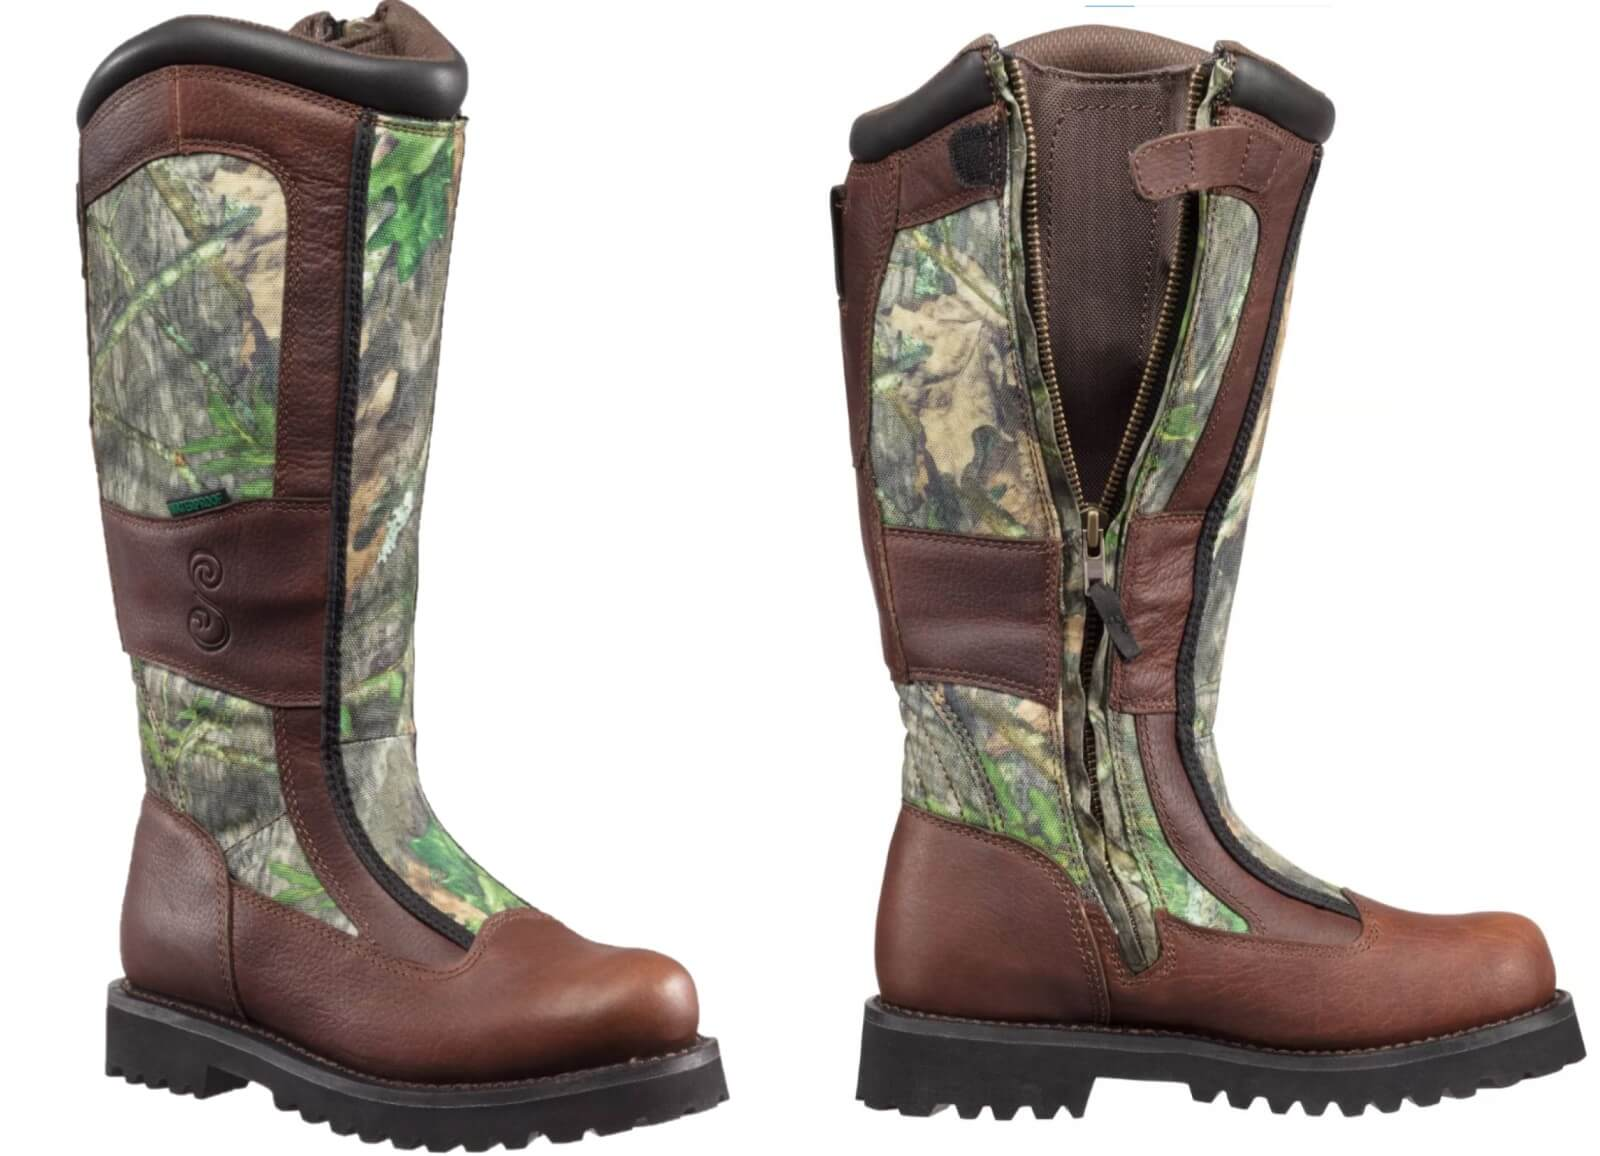 SHE Outdoor Bayou Snake Boot for Women with National Wild Turkey Federation Backing for Turkey Hunting